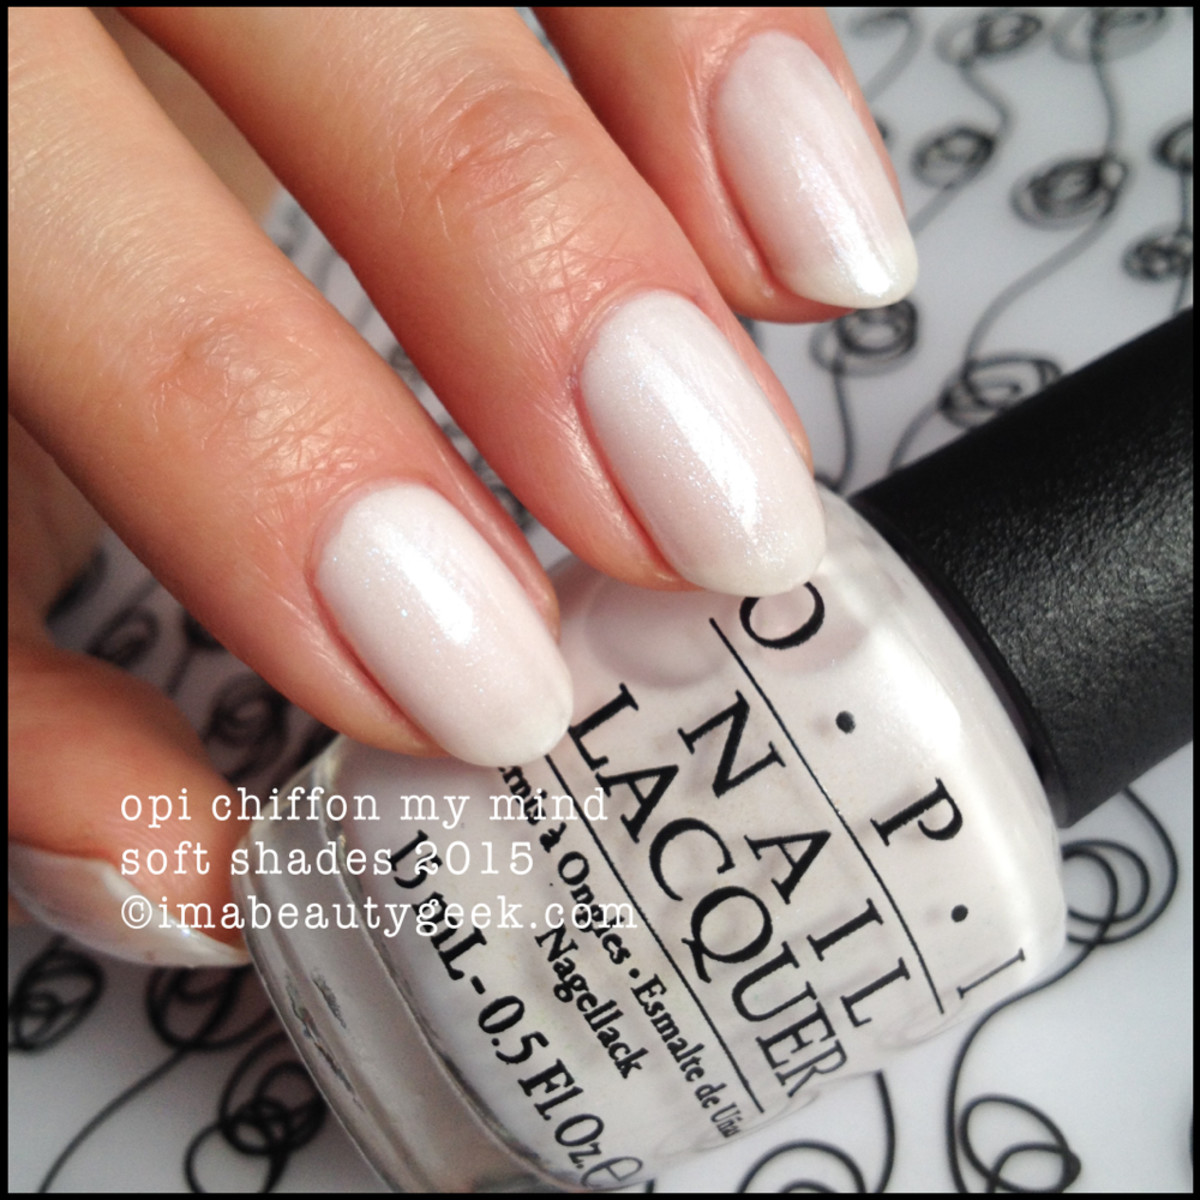 OPI Soft Shades 2015 Chiffon My Mind